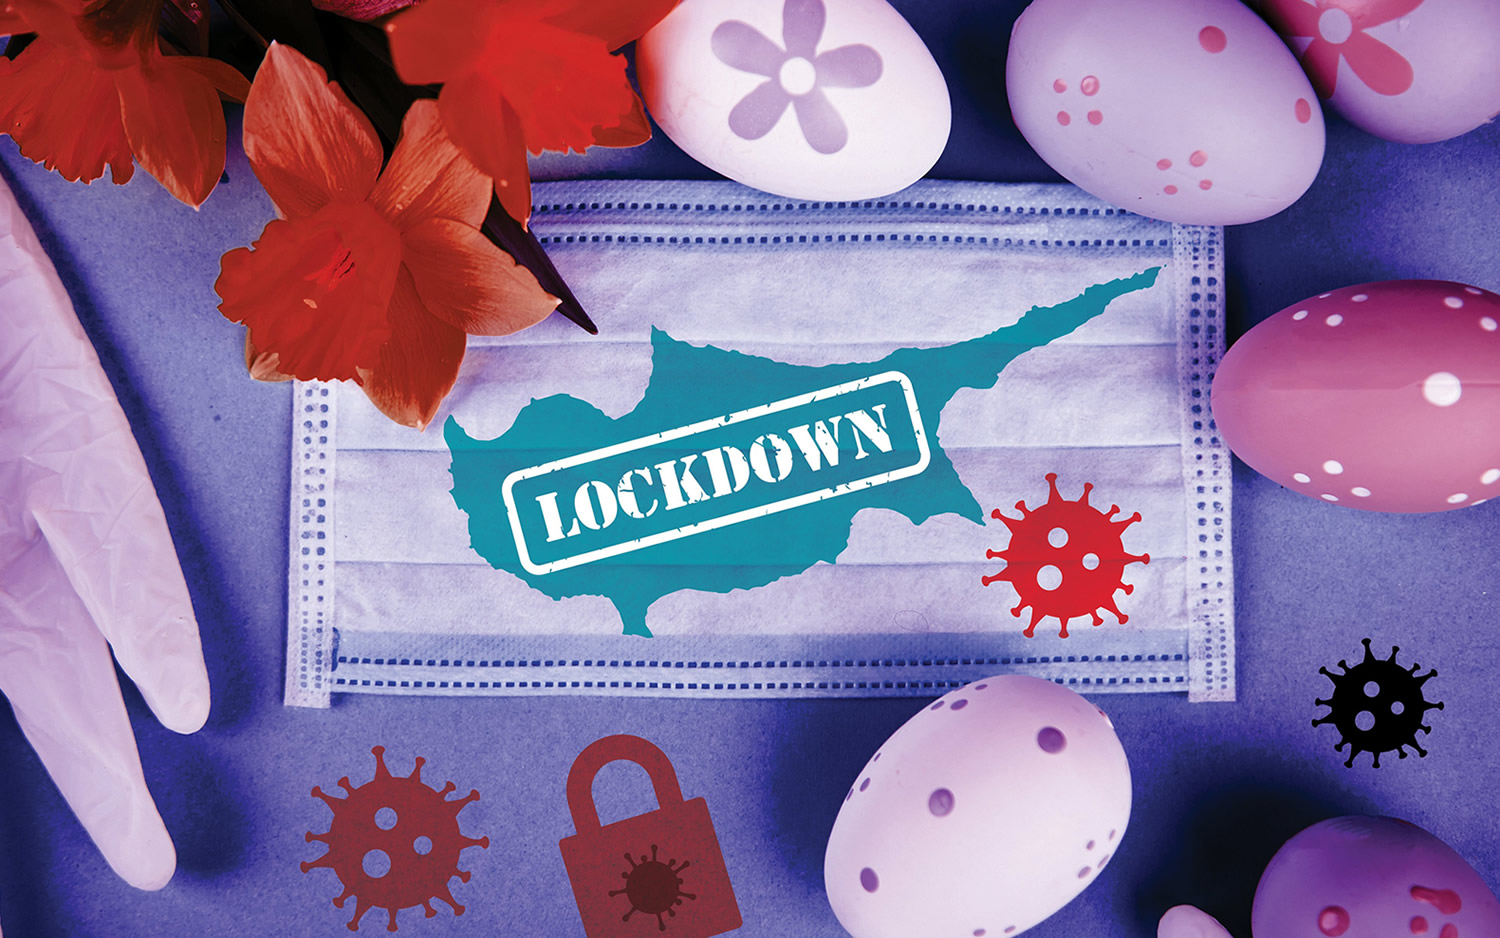 COVID-19: Cyprus gets Lockdown III for Easter